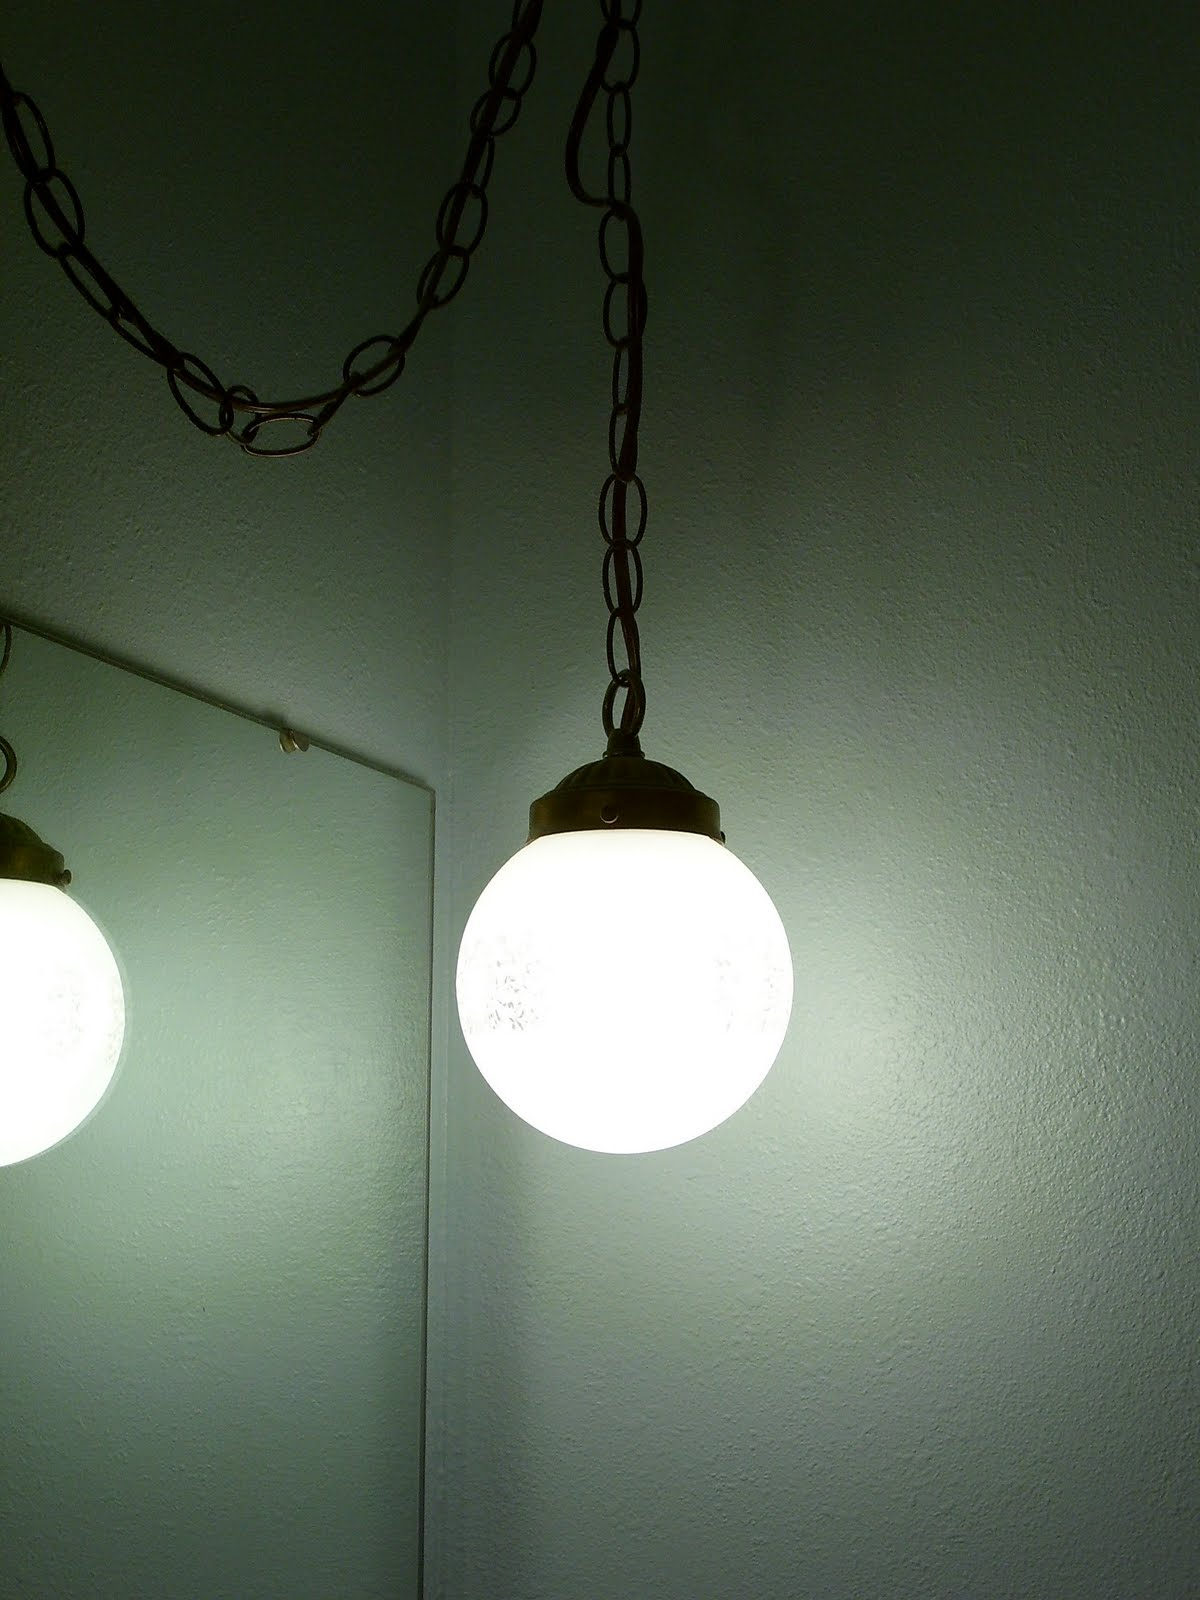 Oldfashioned Lighting at Home Hanging Ceiling Light Fixtures